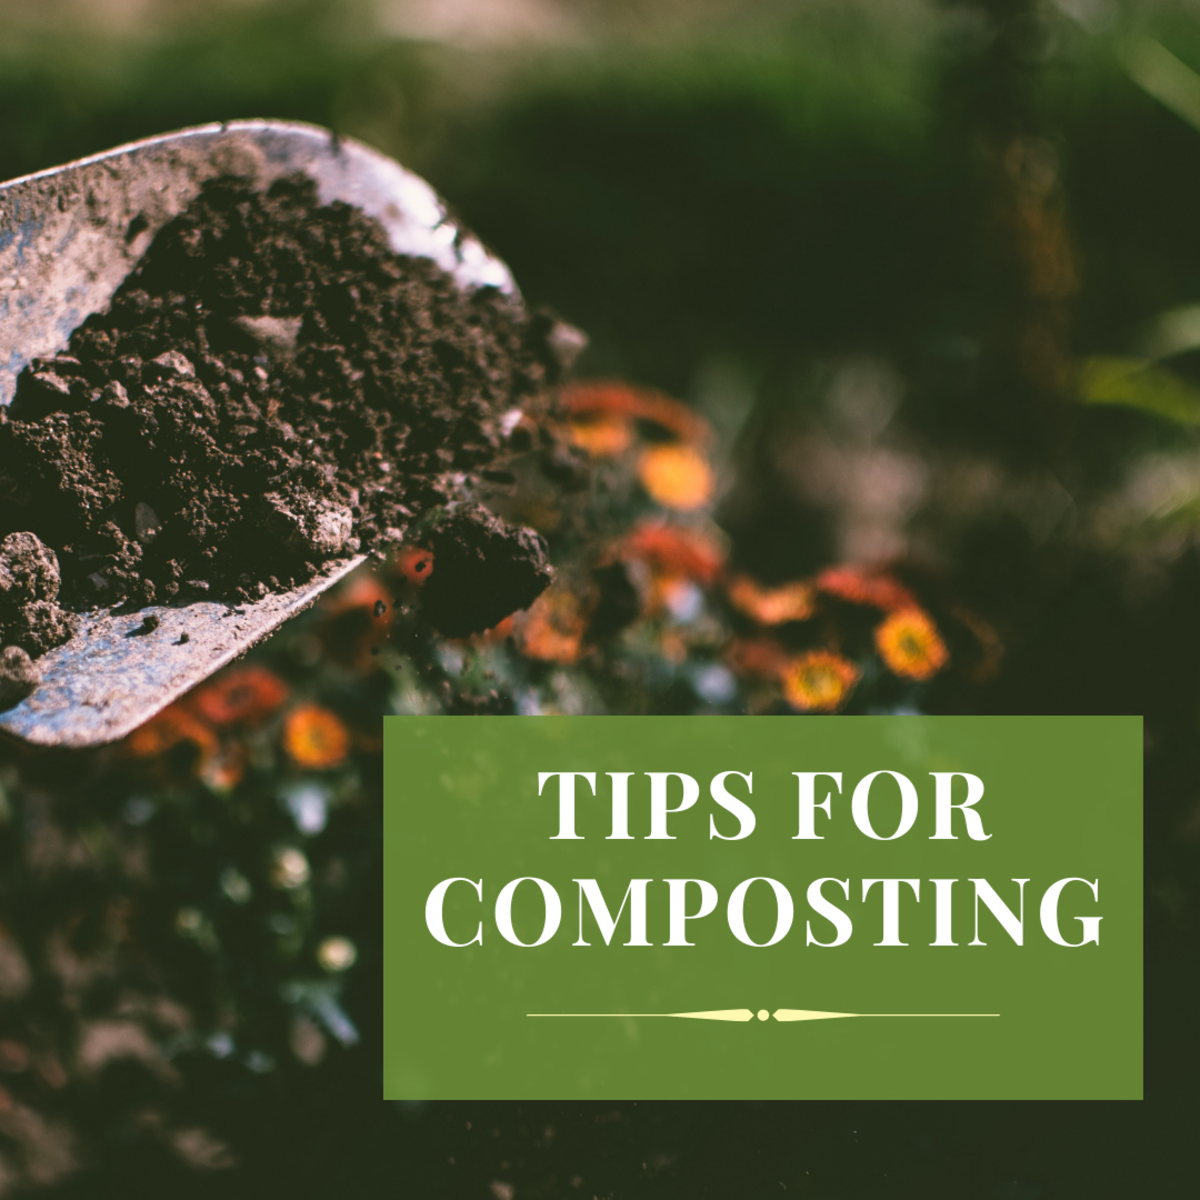 Tips for composting.